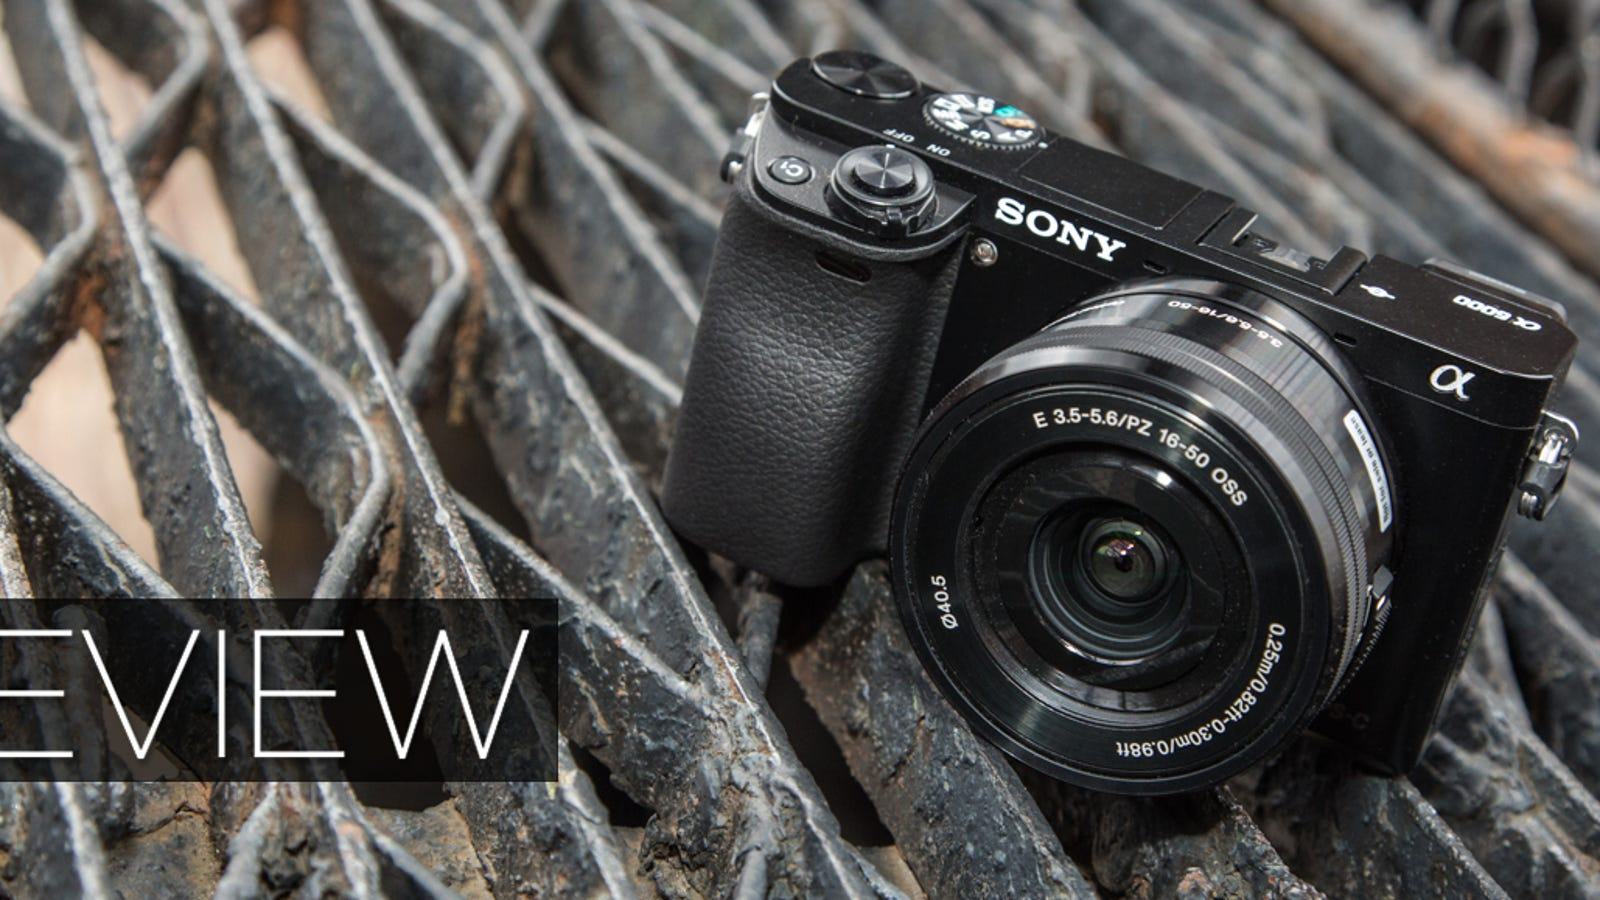 Sony A6000 Review A Solid Mirrorless Camera Thats Small Step Up Kit 16 50 Alpha 6000